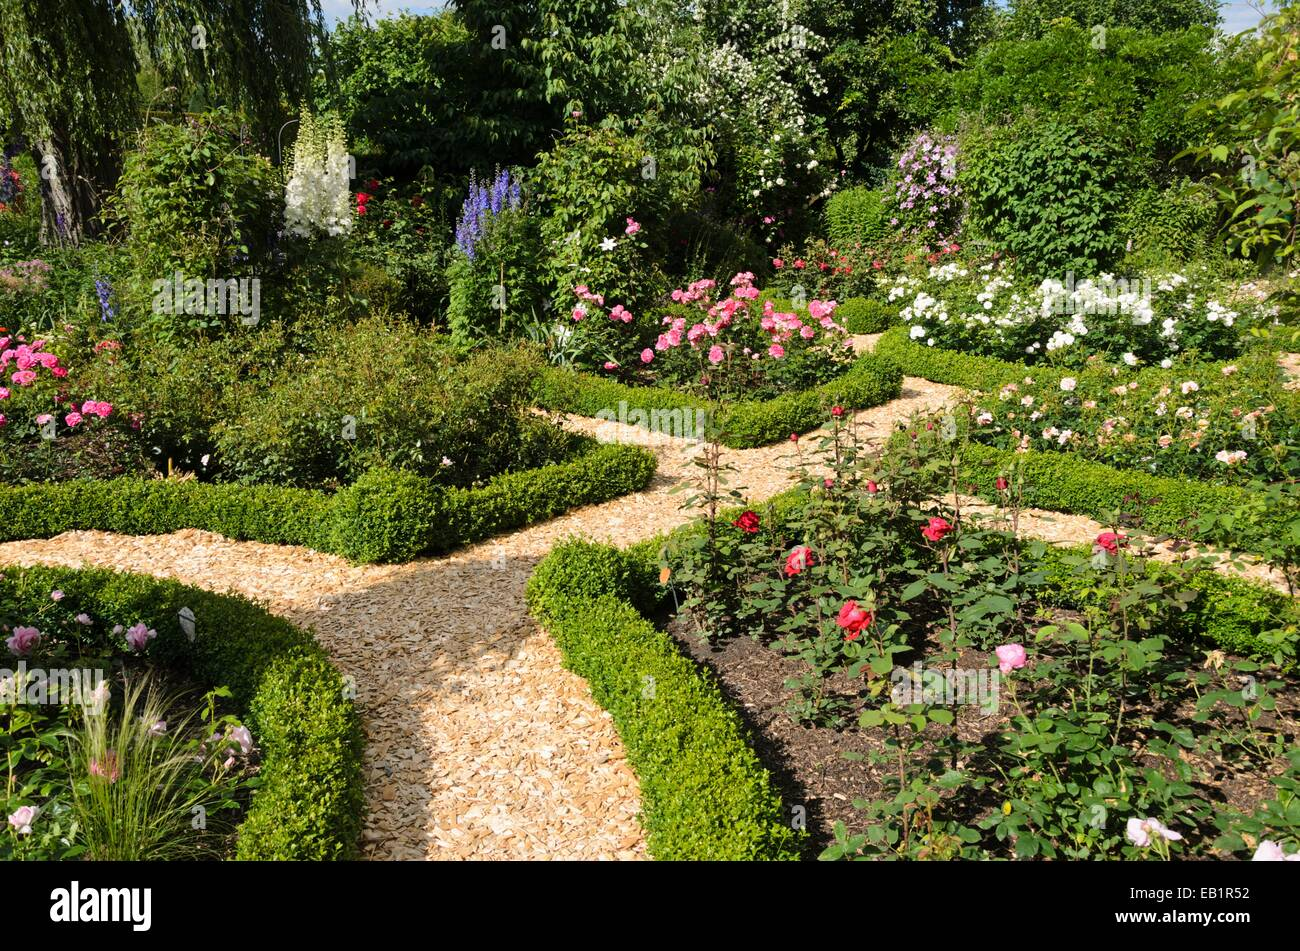 Rose Garden Design portlands international rose test garden garden design calimesa Boxwood Hedges In A Rose Garden Design Marianne And Detlef Ldke